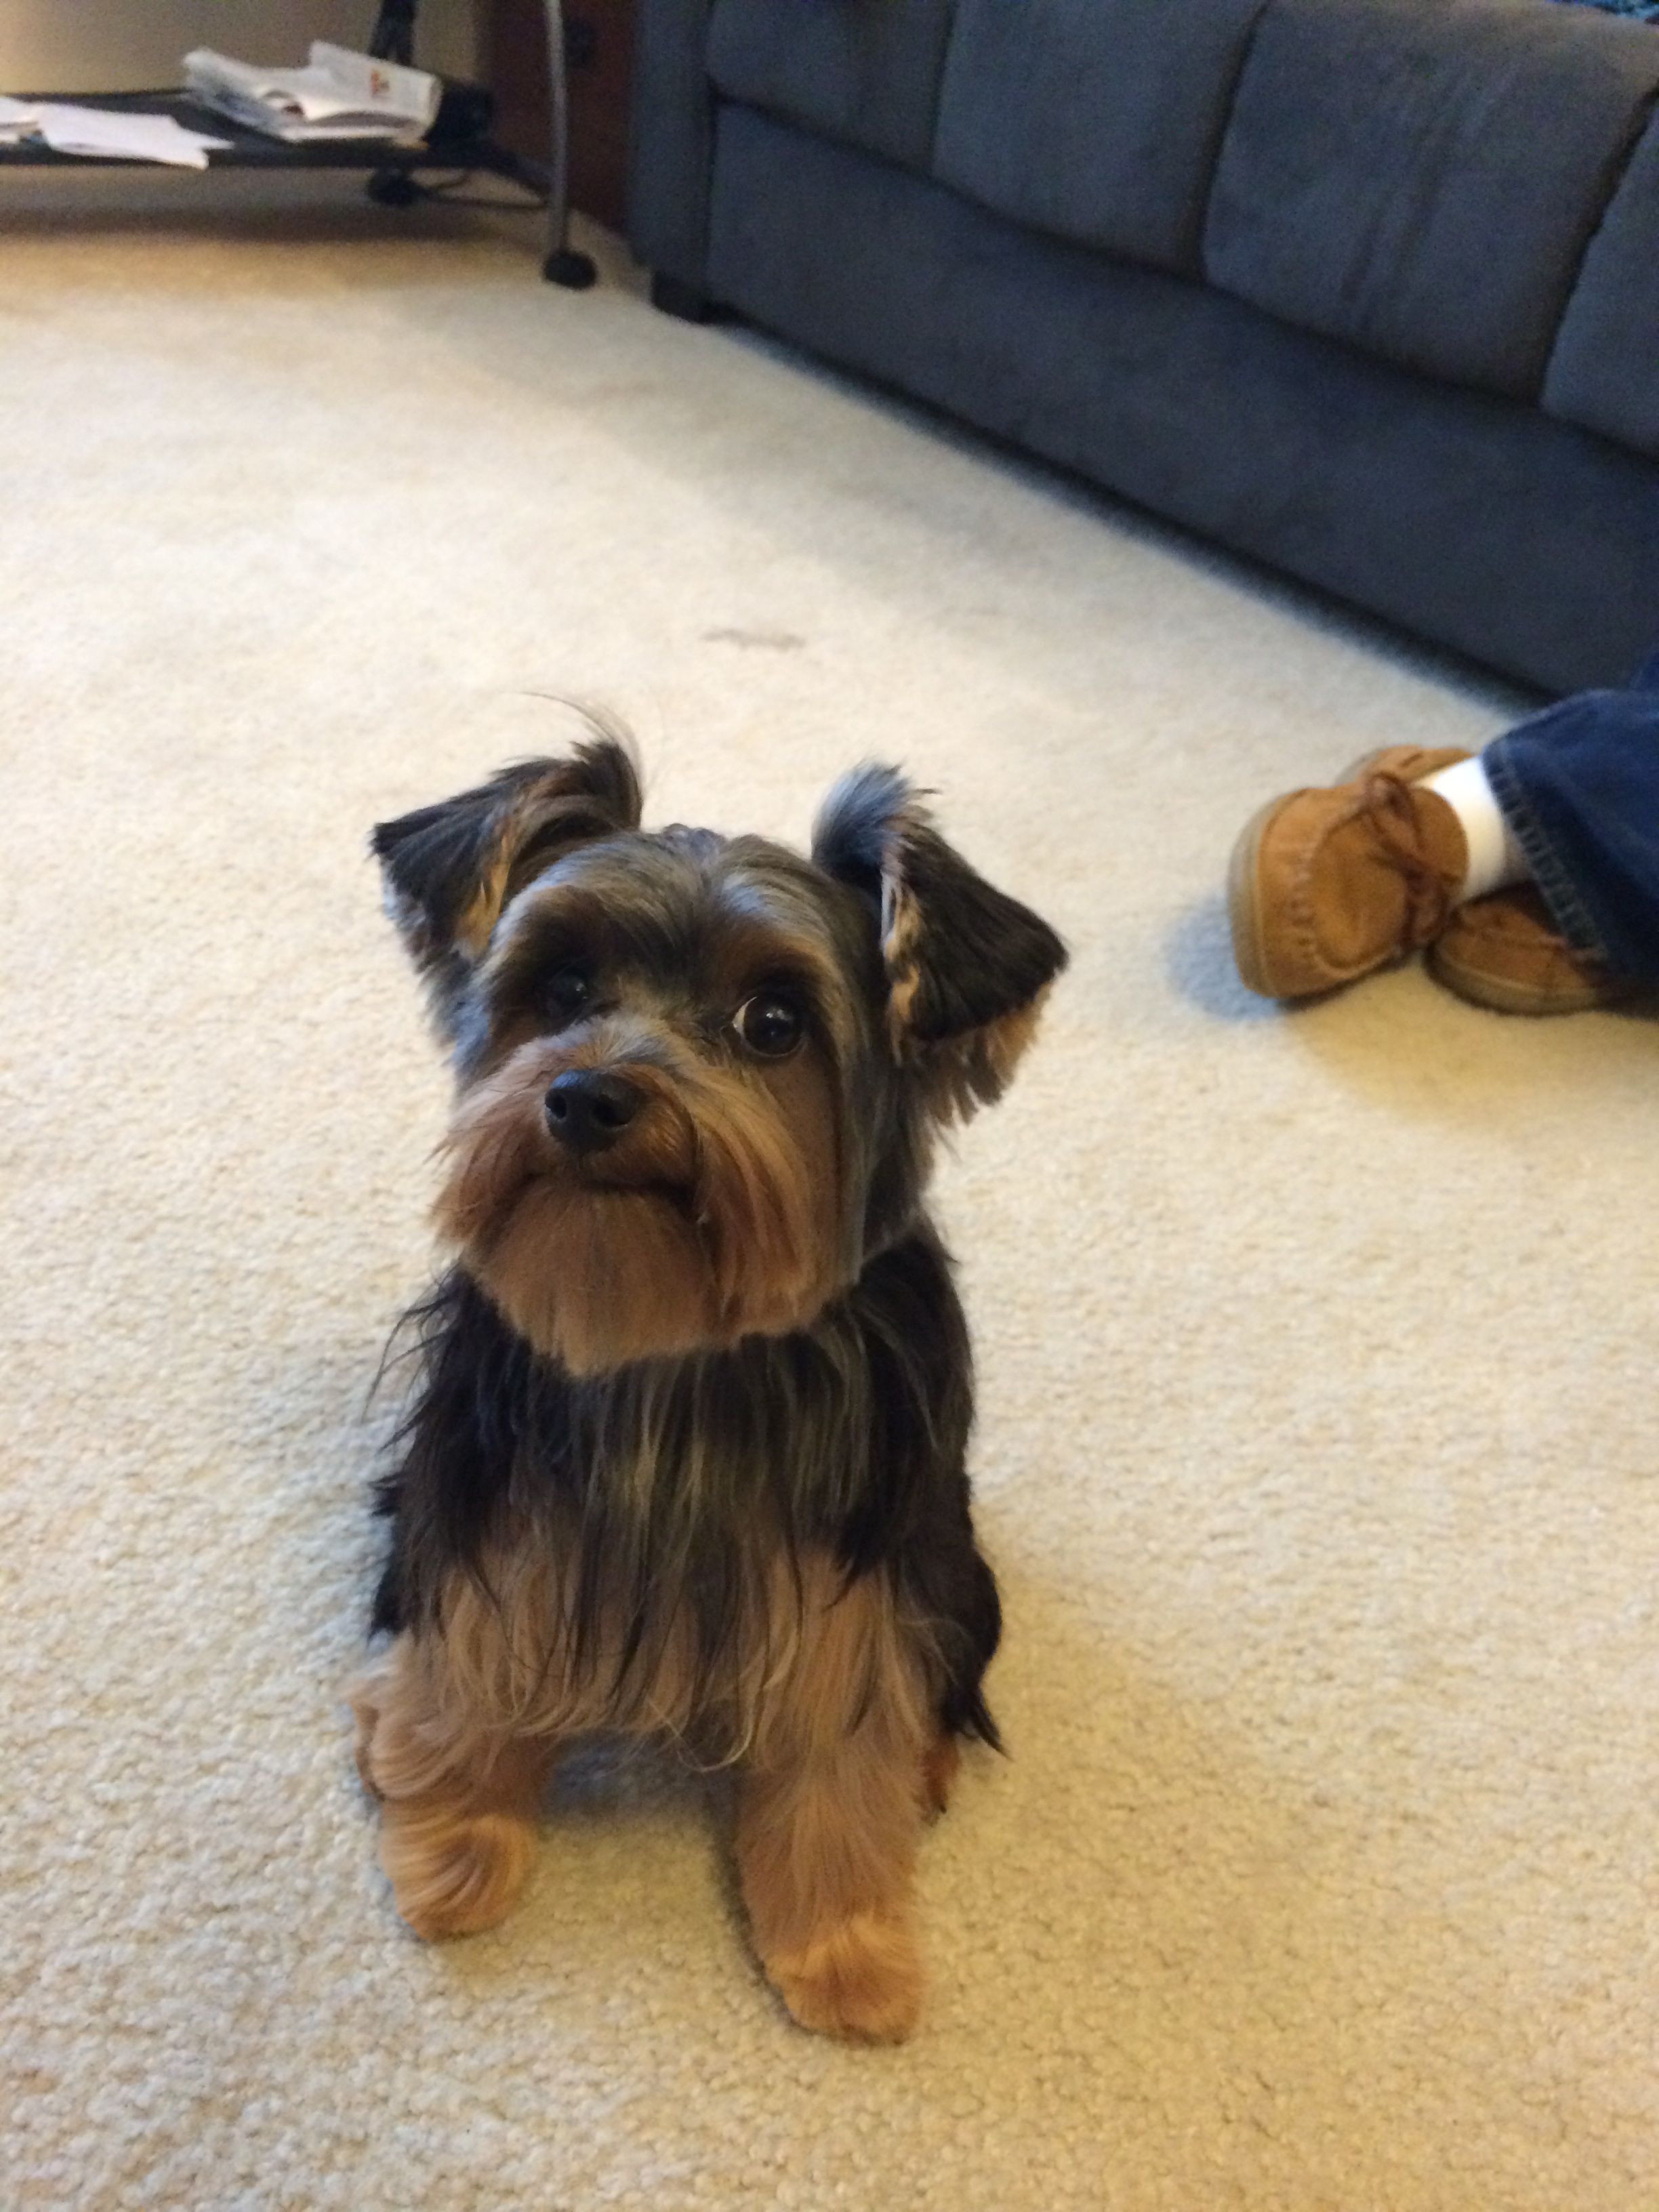 Yorkie Haircuts For Males And Females 60 Pictures Yorkie Life Yorkshire Terrier Yorkshire Terrier Dog Yorkie Haircuts